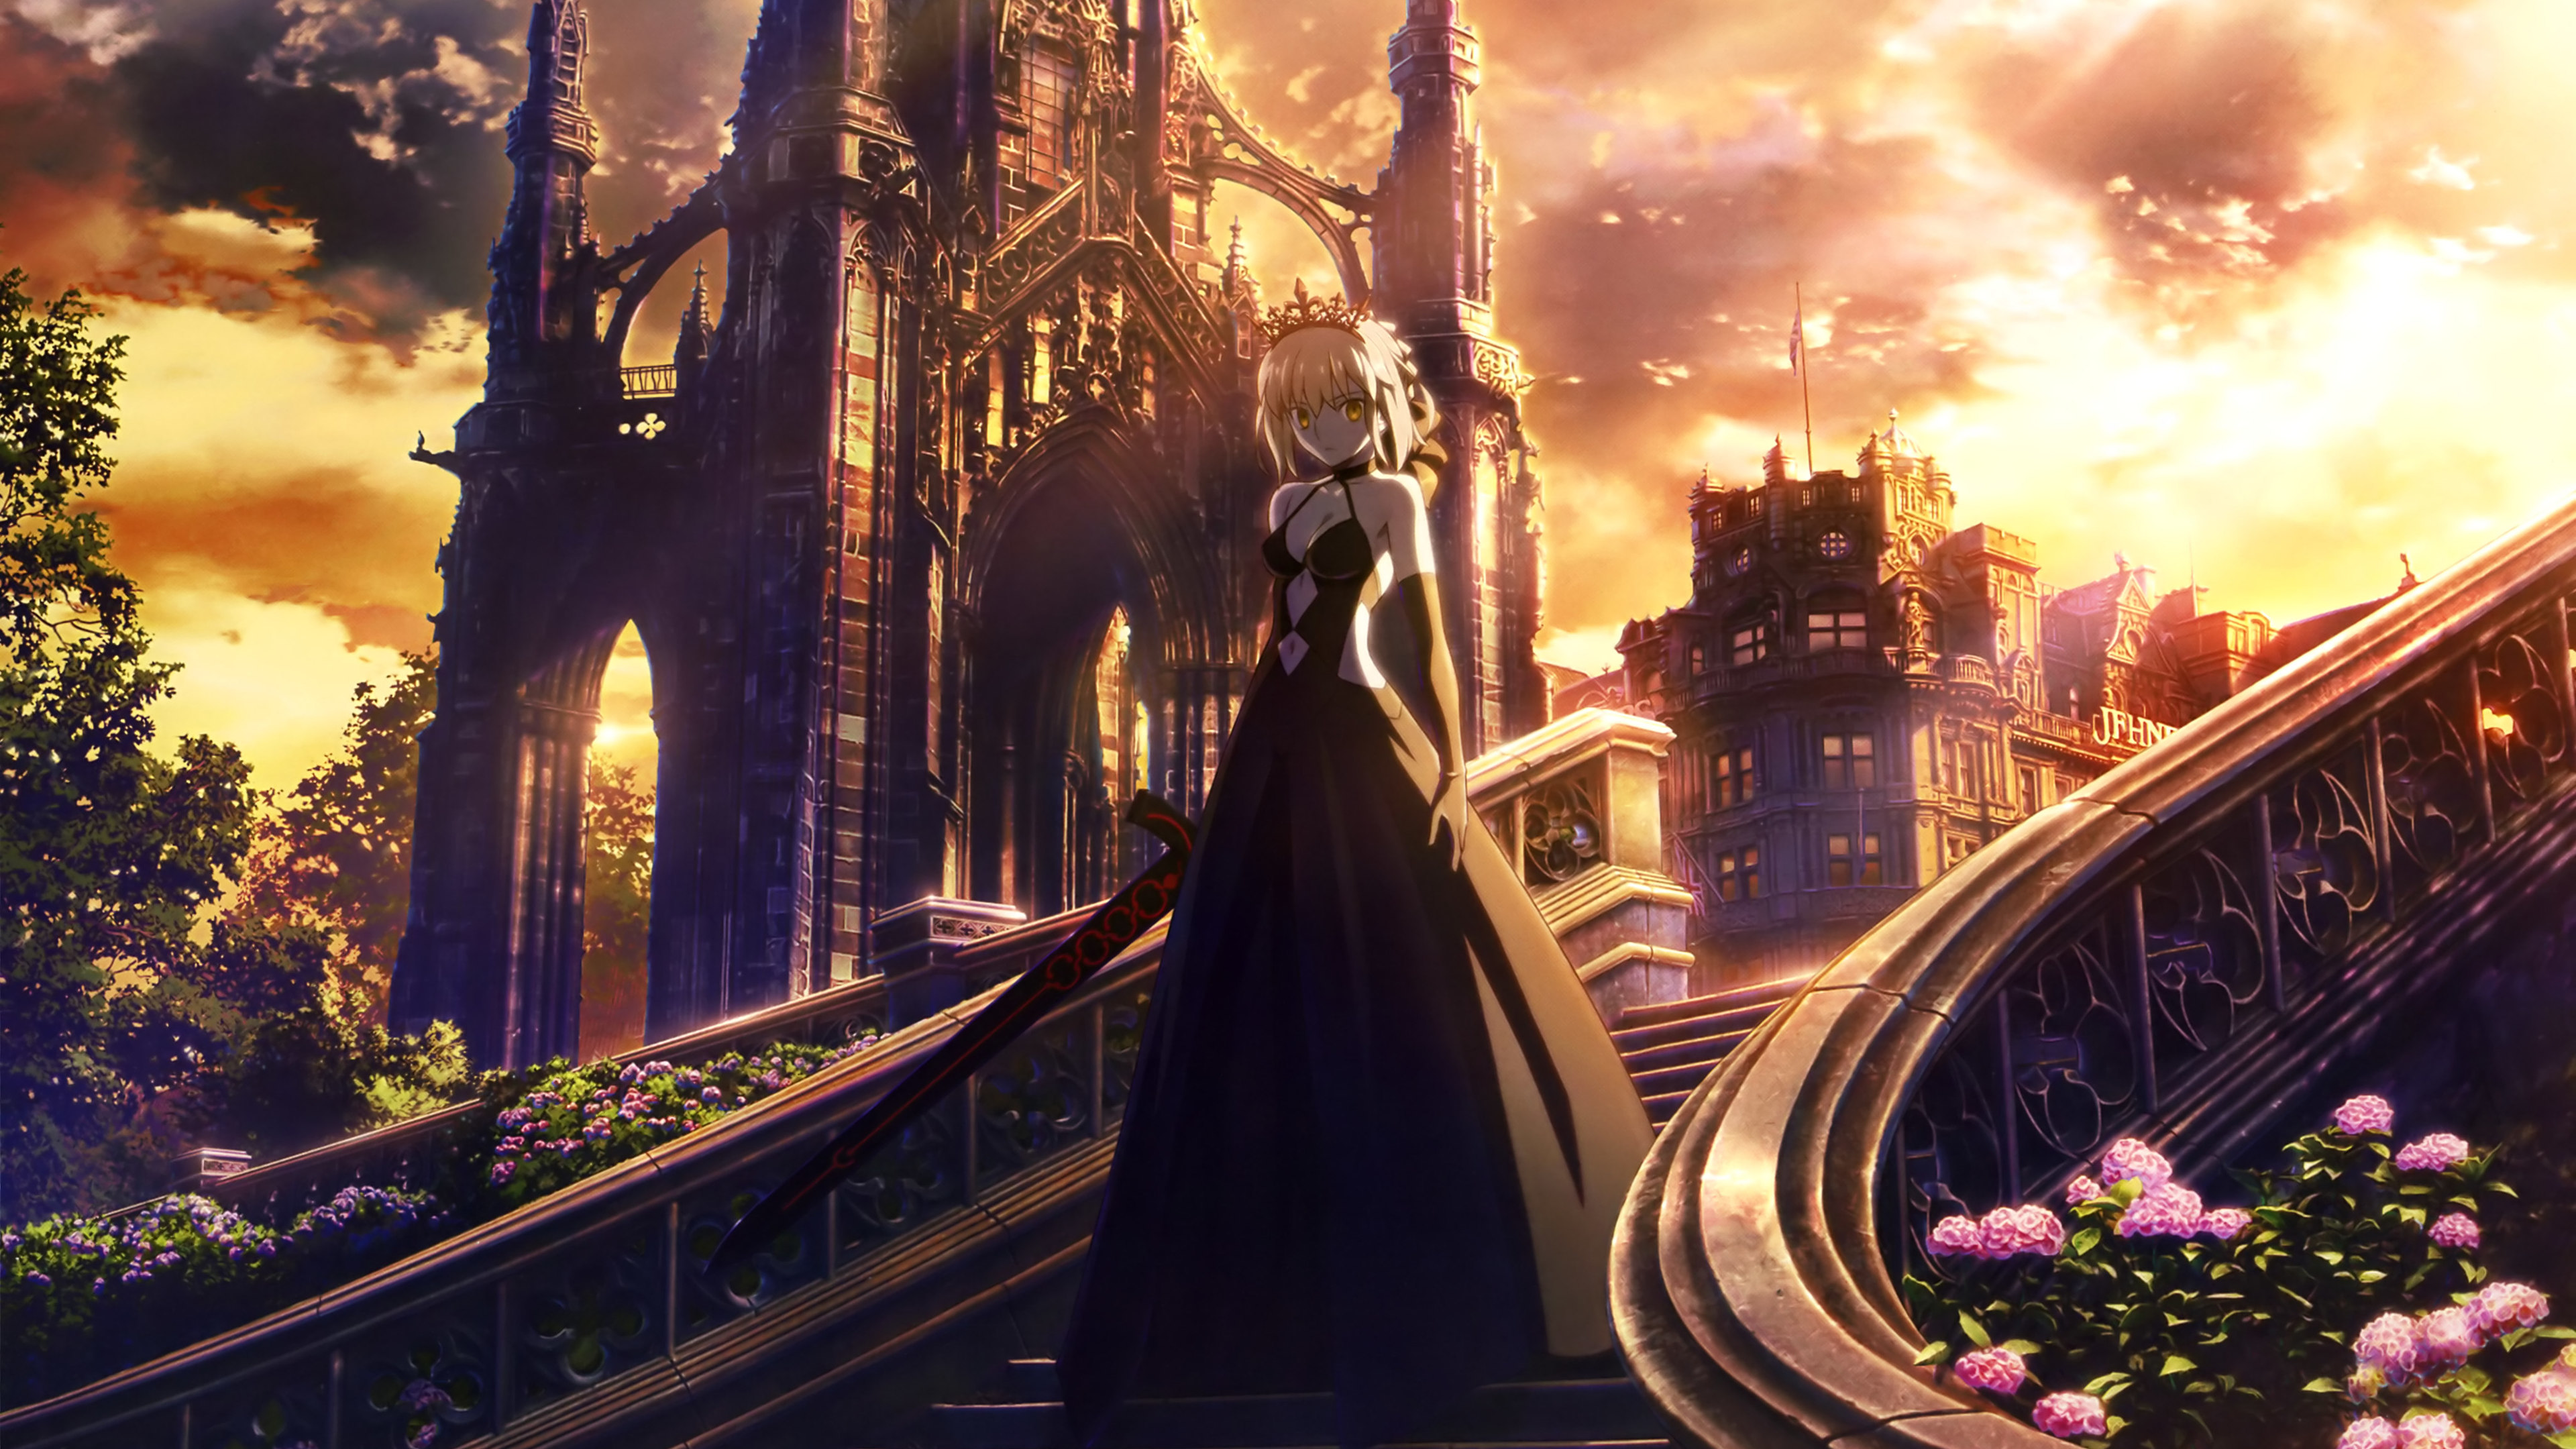 Wallpaper 4k Fate Stay Night Anime Girl Walking Through Stairs 4k